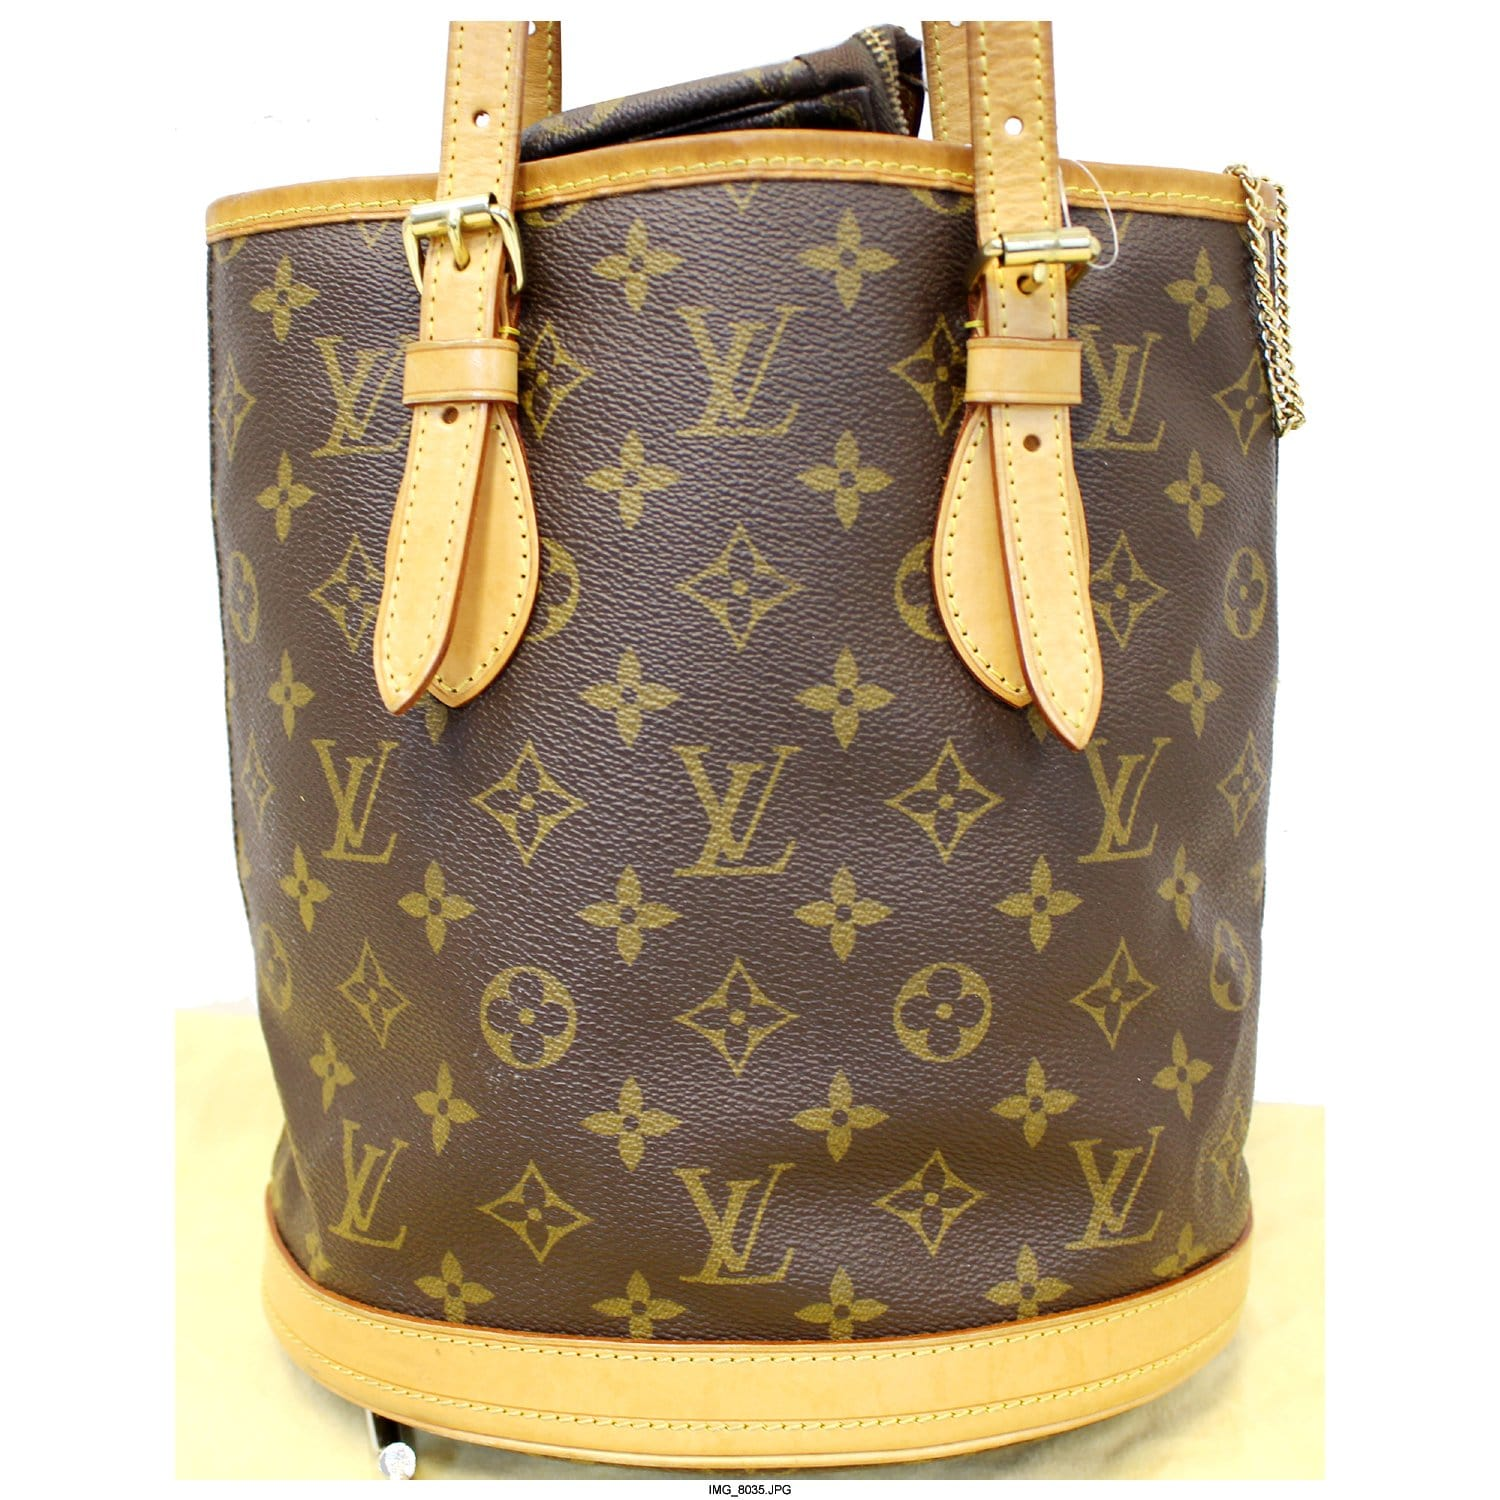 3d27a005804a LOUIS VUITTON Bucket PM Monogram Canvas Shoulder Bag-US